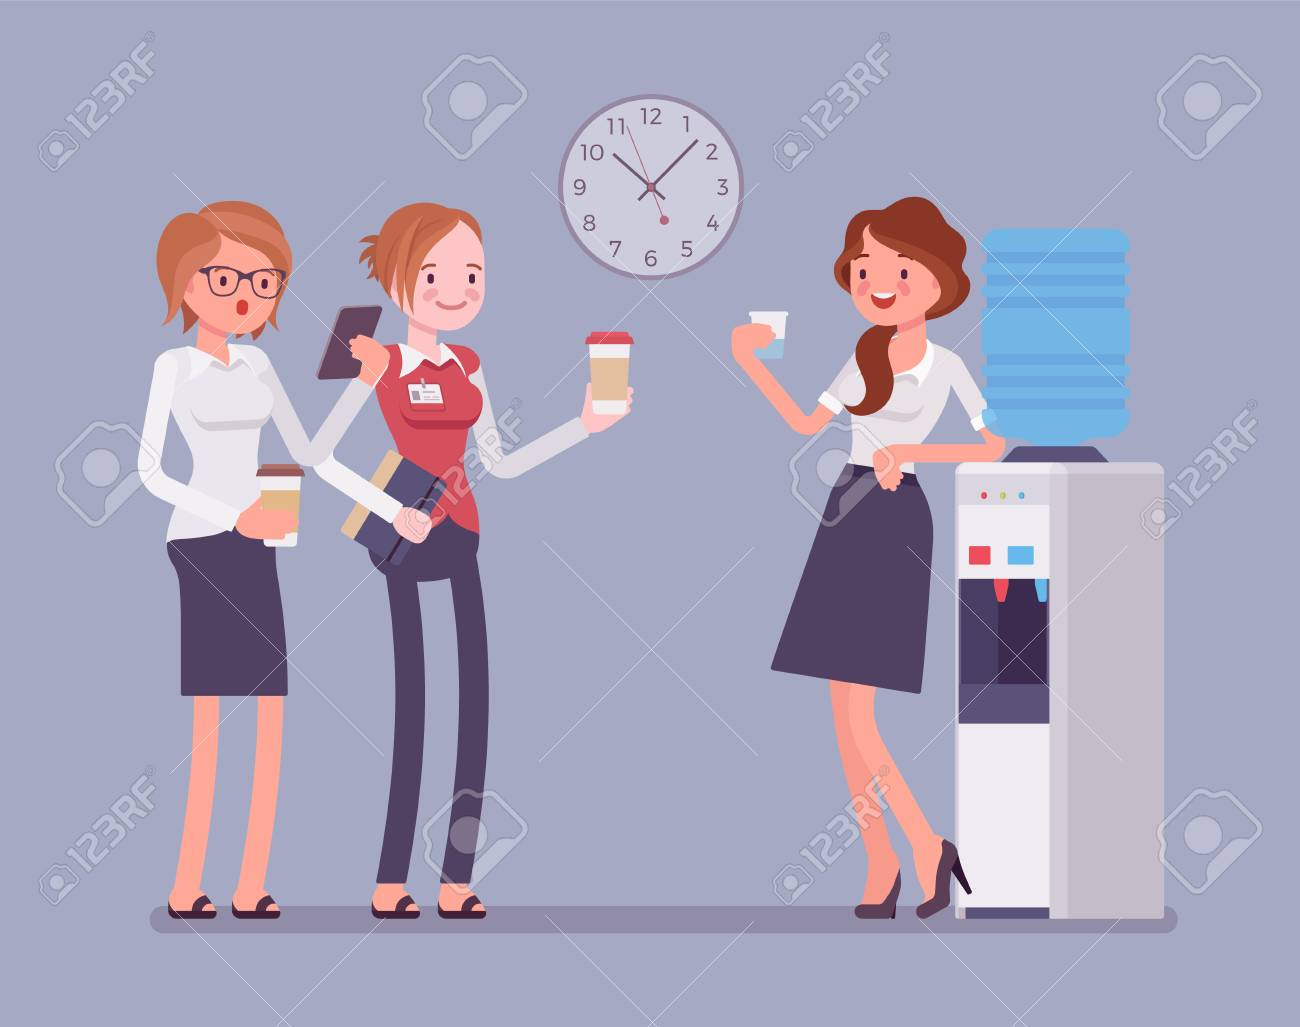 Office cooler chat - 94911402